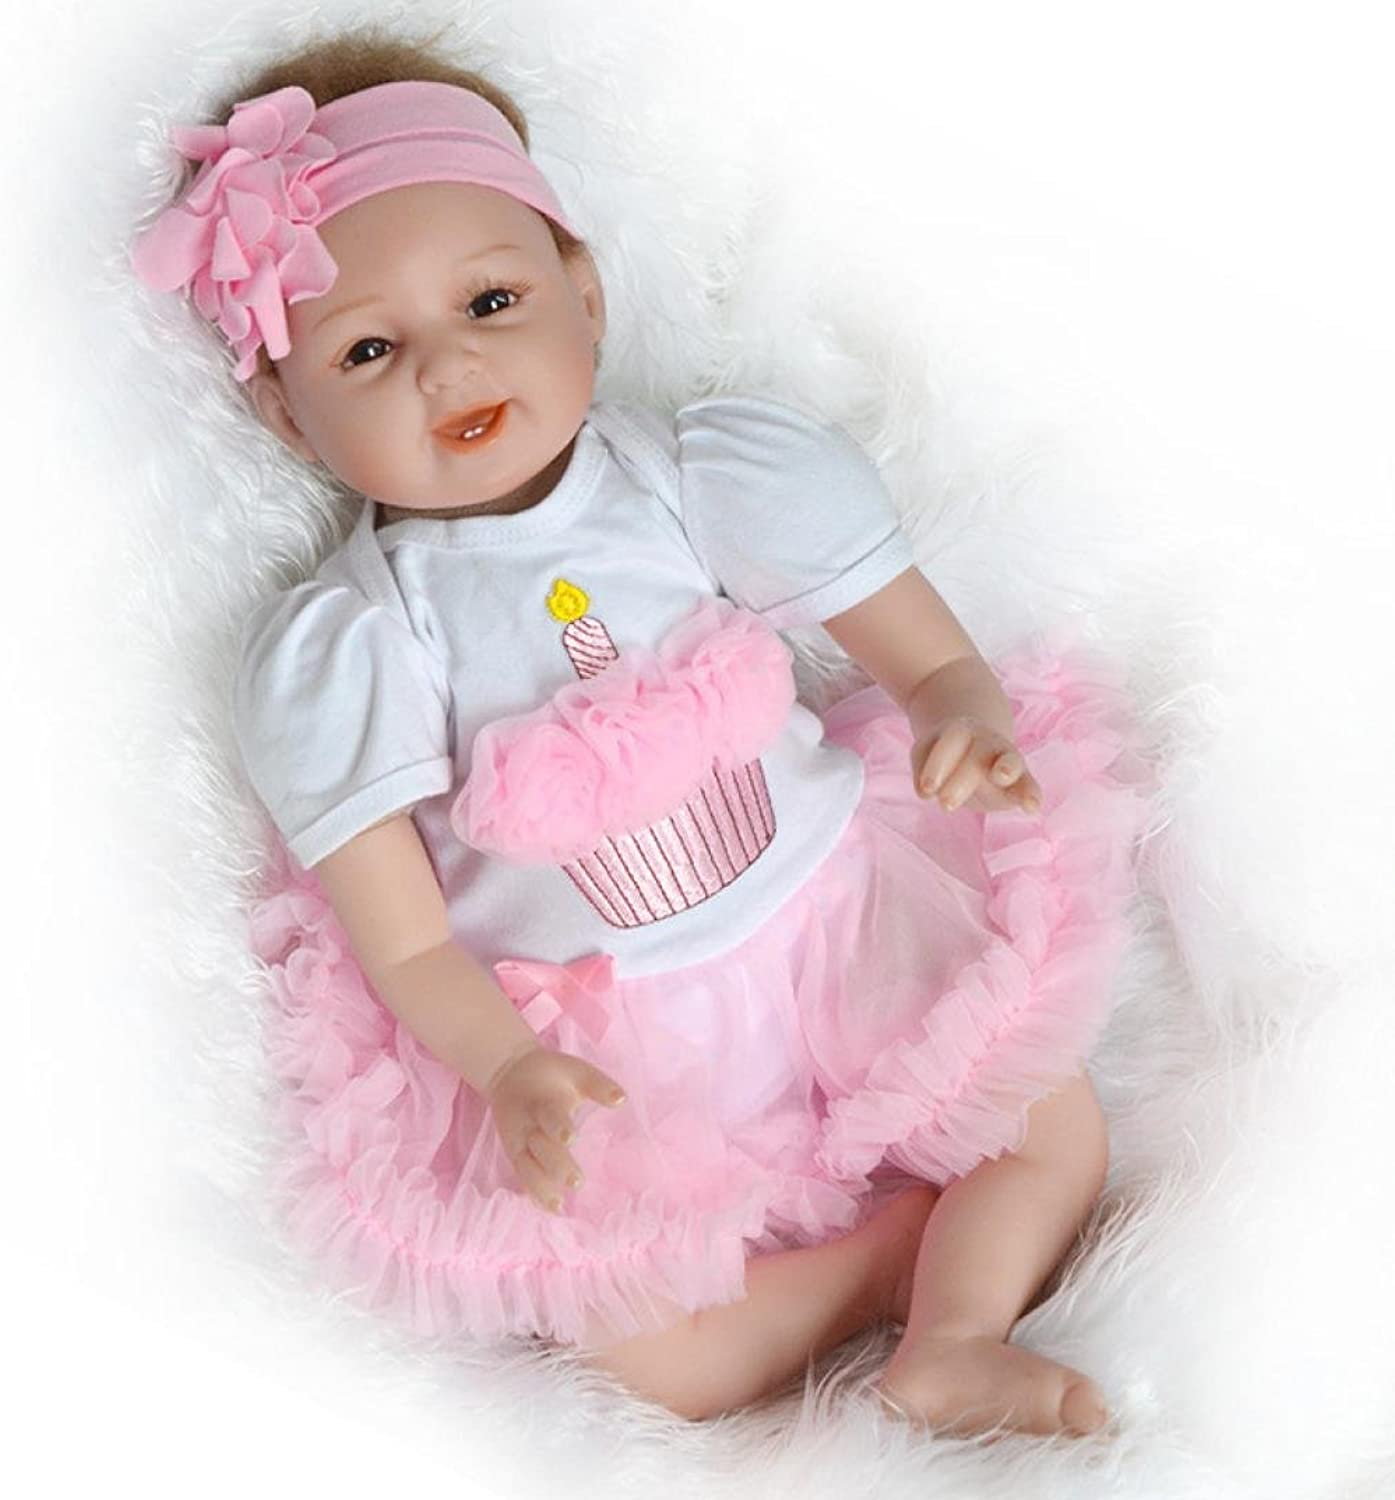 Kingko_ 22inch Reborn Newborn Baby Dolls, Look Real Soft Silicone Lifelike Full Body reborn Doll with Baby Clothes for Toddler Boys Girls Birthday Gift (Pink&White)